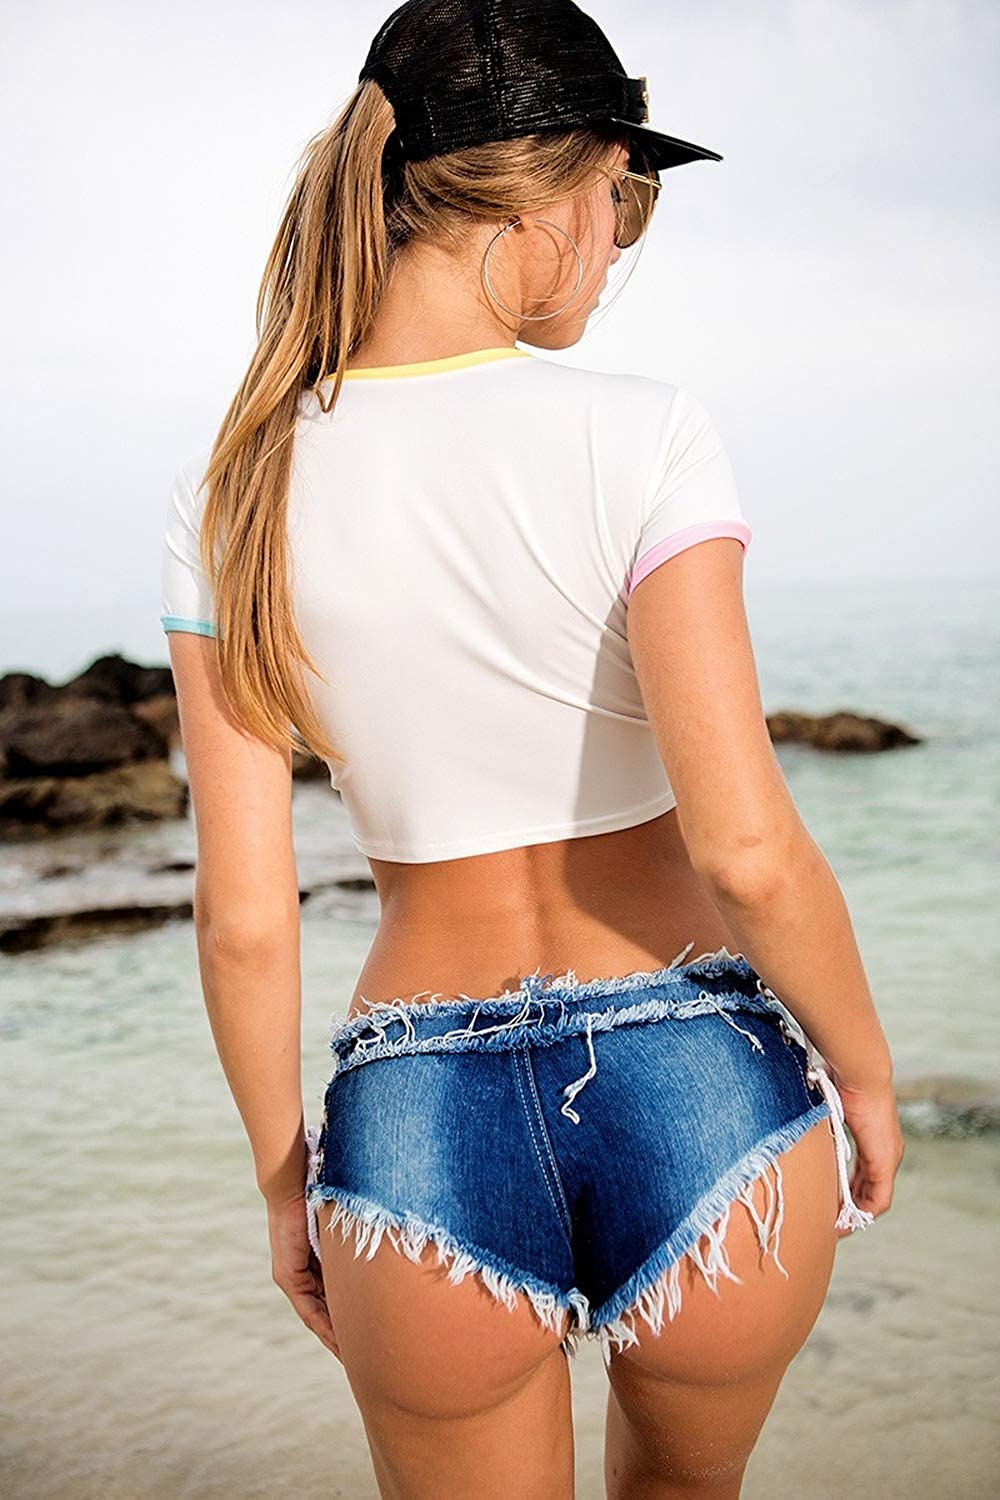 2021 New Summer Women's Jeans Denim Shorts hot Pants Low-Waisted Sexy Nightclub Clothing